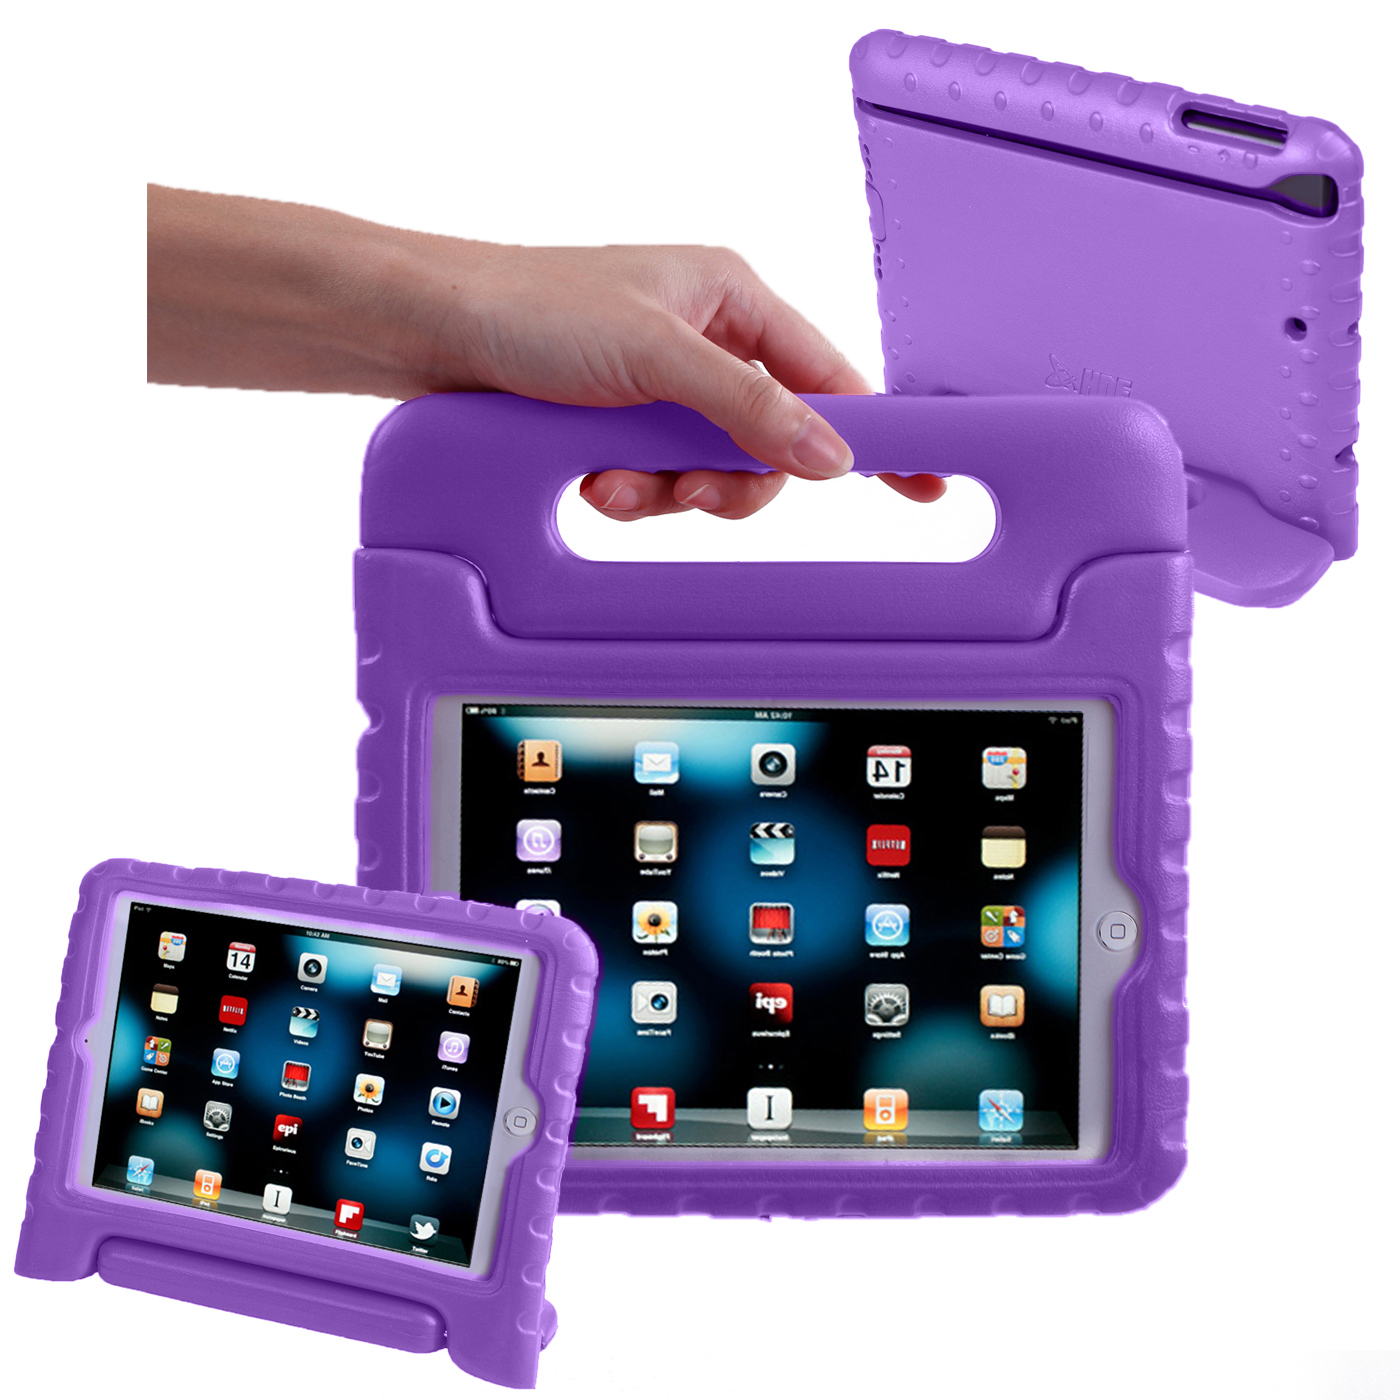 HDE iPad Mini 2 3 Case for Kids - Rugged Heavy Duty Drop Proof Children Toy Protective Shockproof Cover Handle Stand for Apple iPad Mini 1 2 3 Retina (Purple)